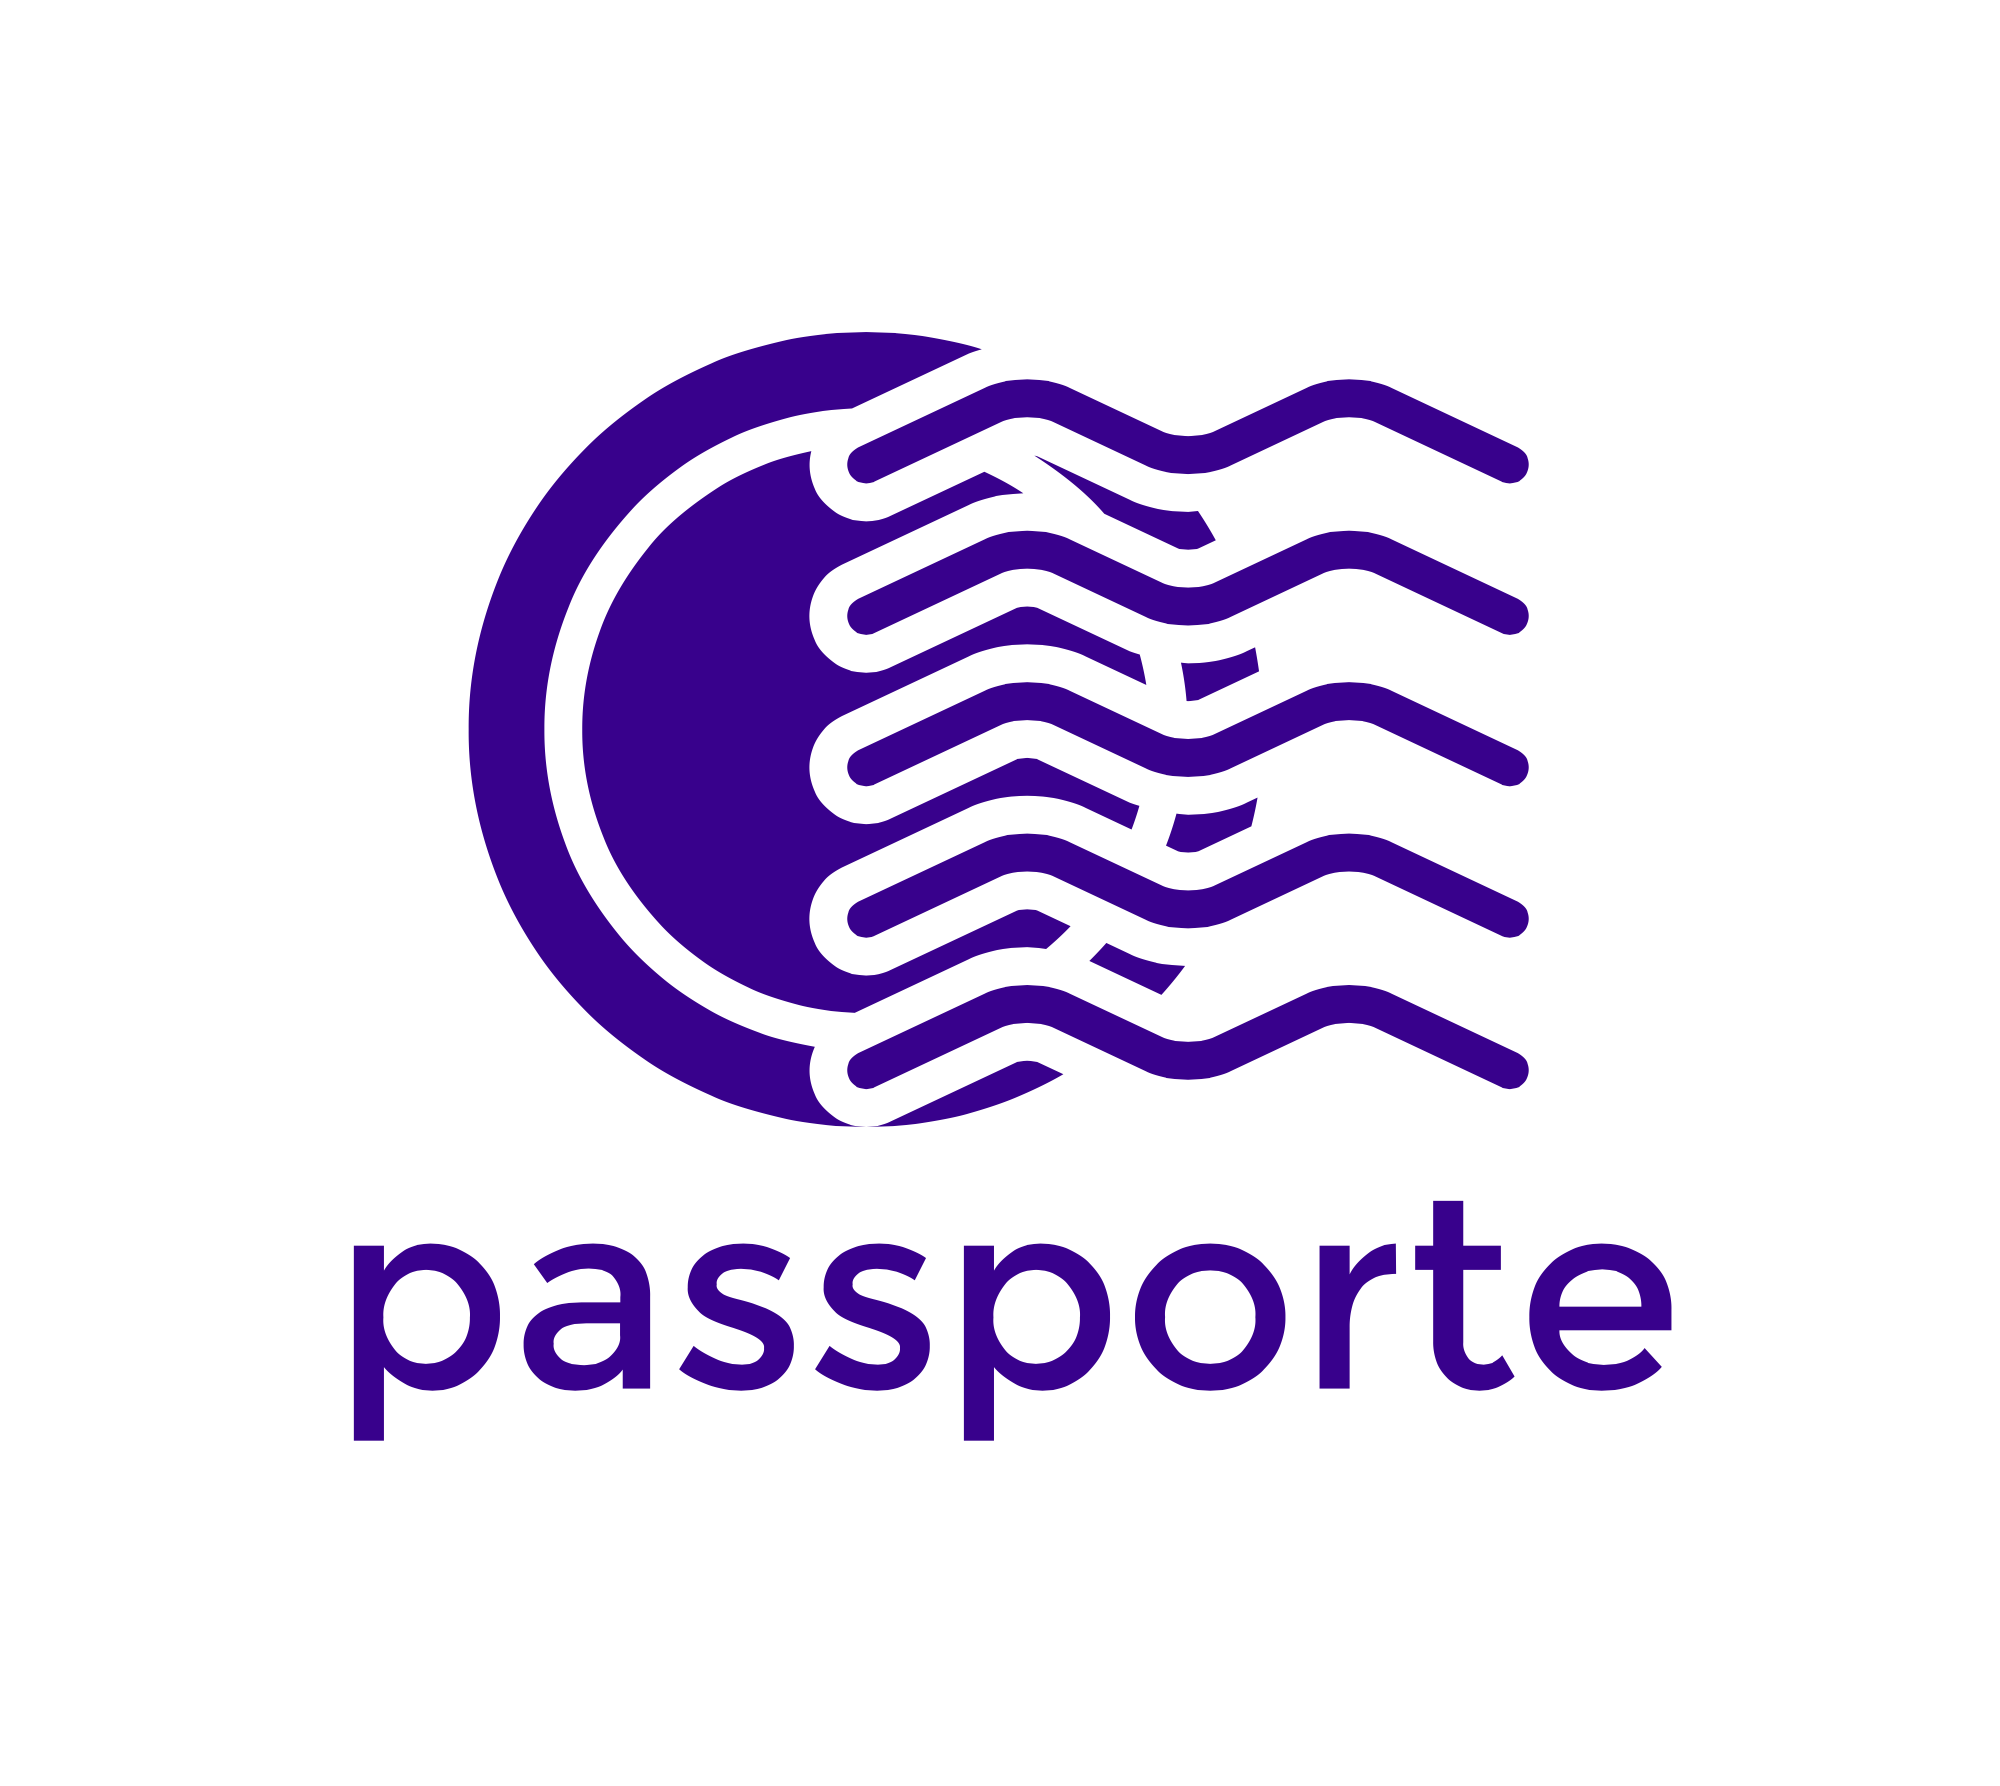 The Passporte Salon: Built Environment